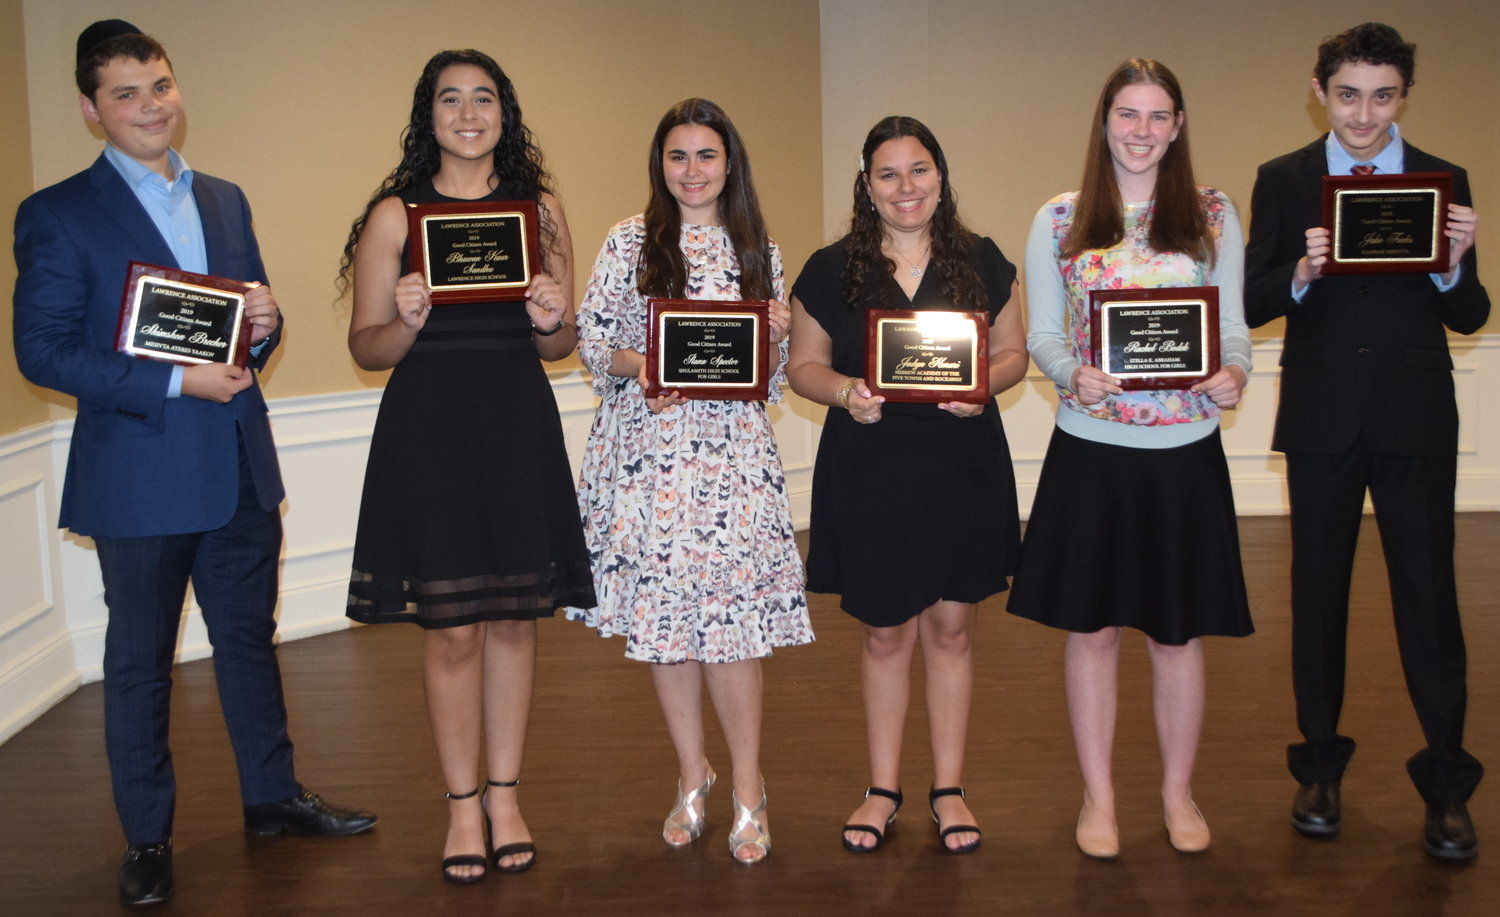 Good Citizenship awards were given to local high school students by the Lawrence Association on June 11. From left were Shimshon Brecher, Bhawan Kaur Sandhu, Ilana Spector, Jadyn Harari, Rachel Bodek and Jake Fuchs. Not picture, Yishai Attias.